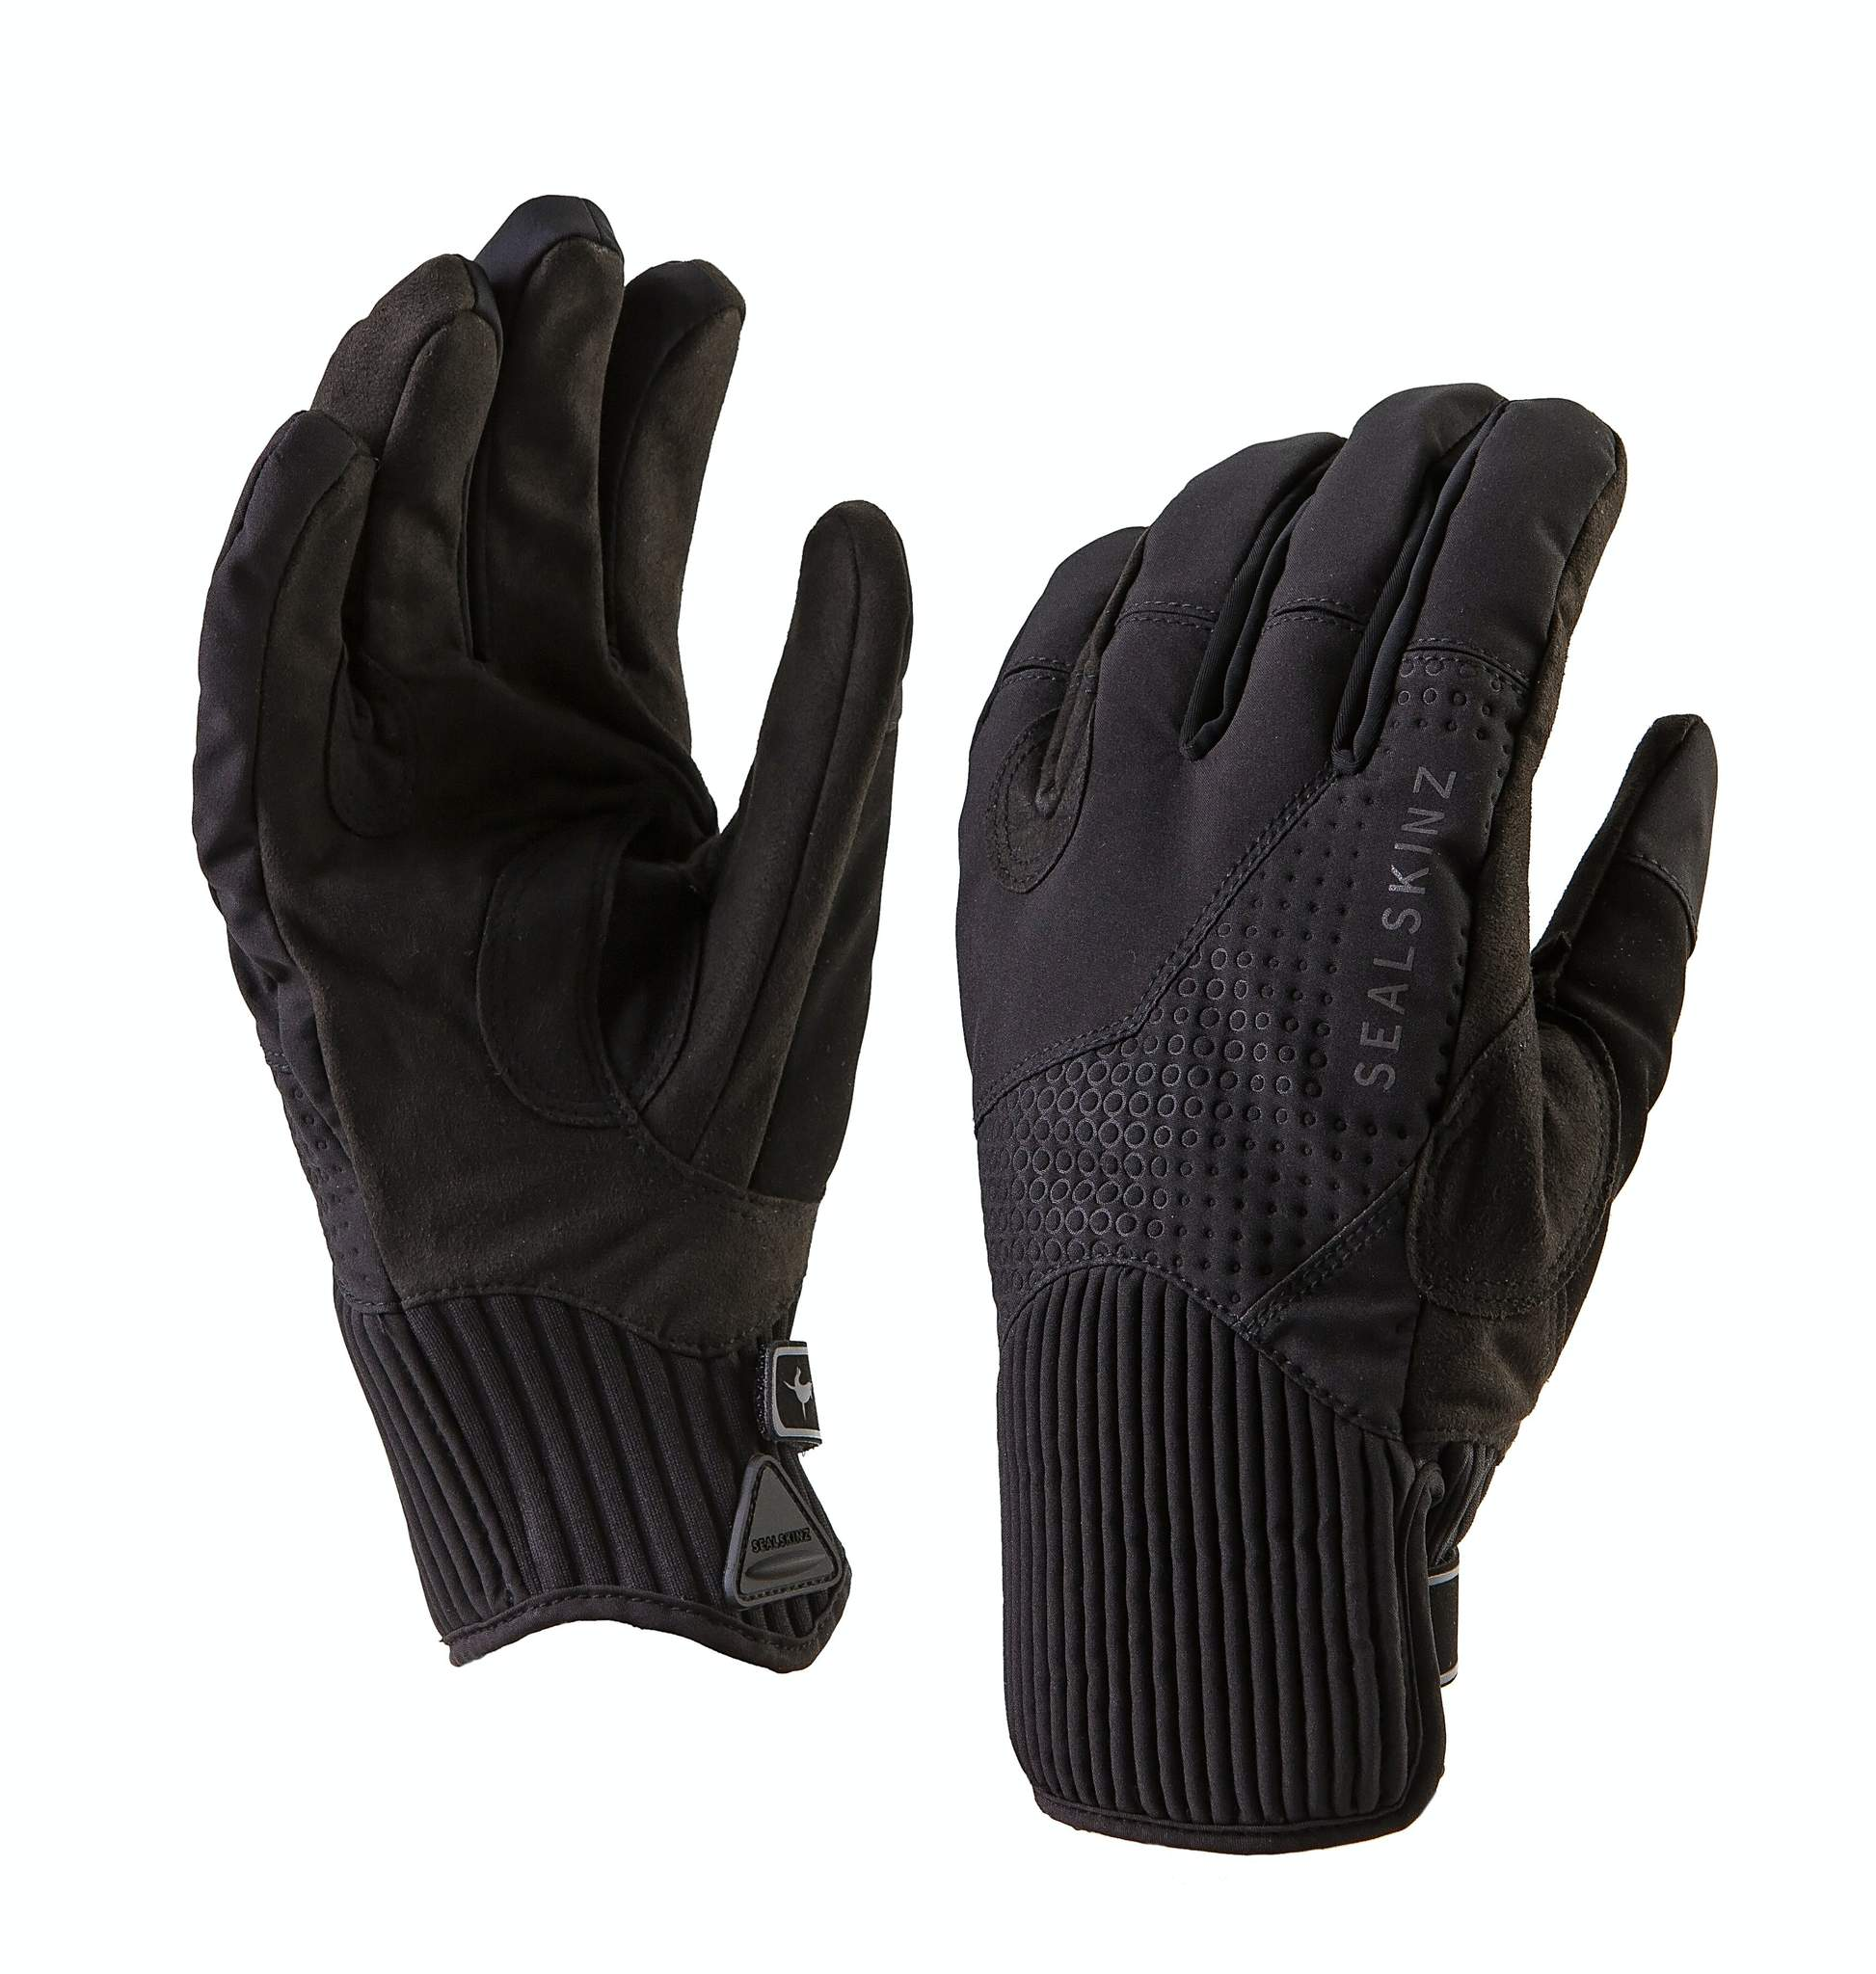 Sealskinz Womens Elgin Glove Black